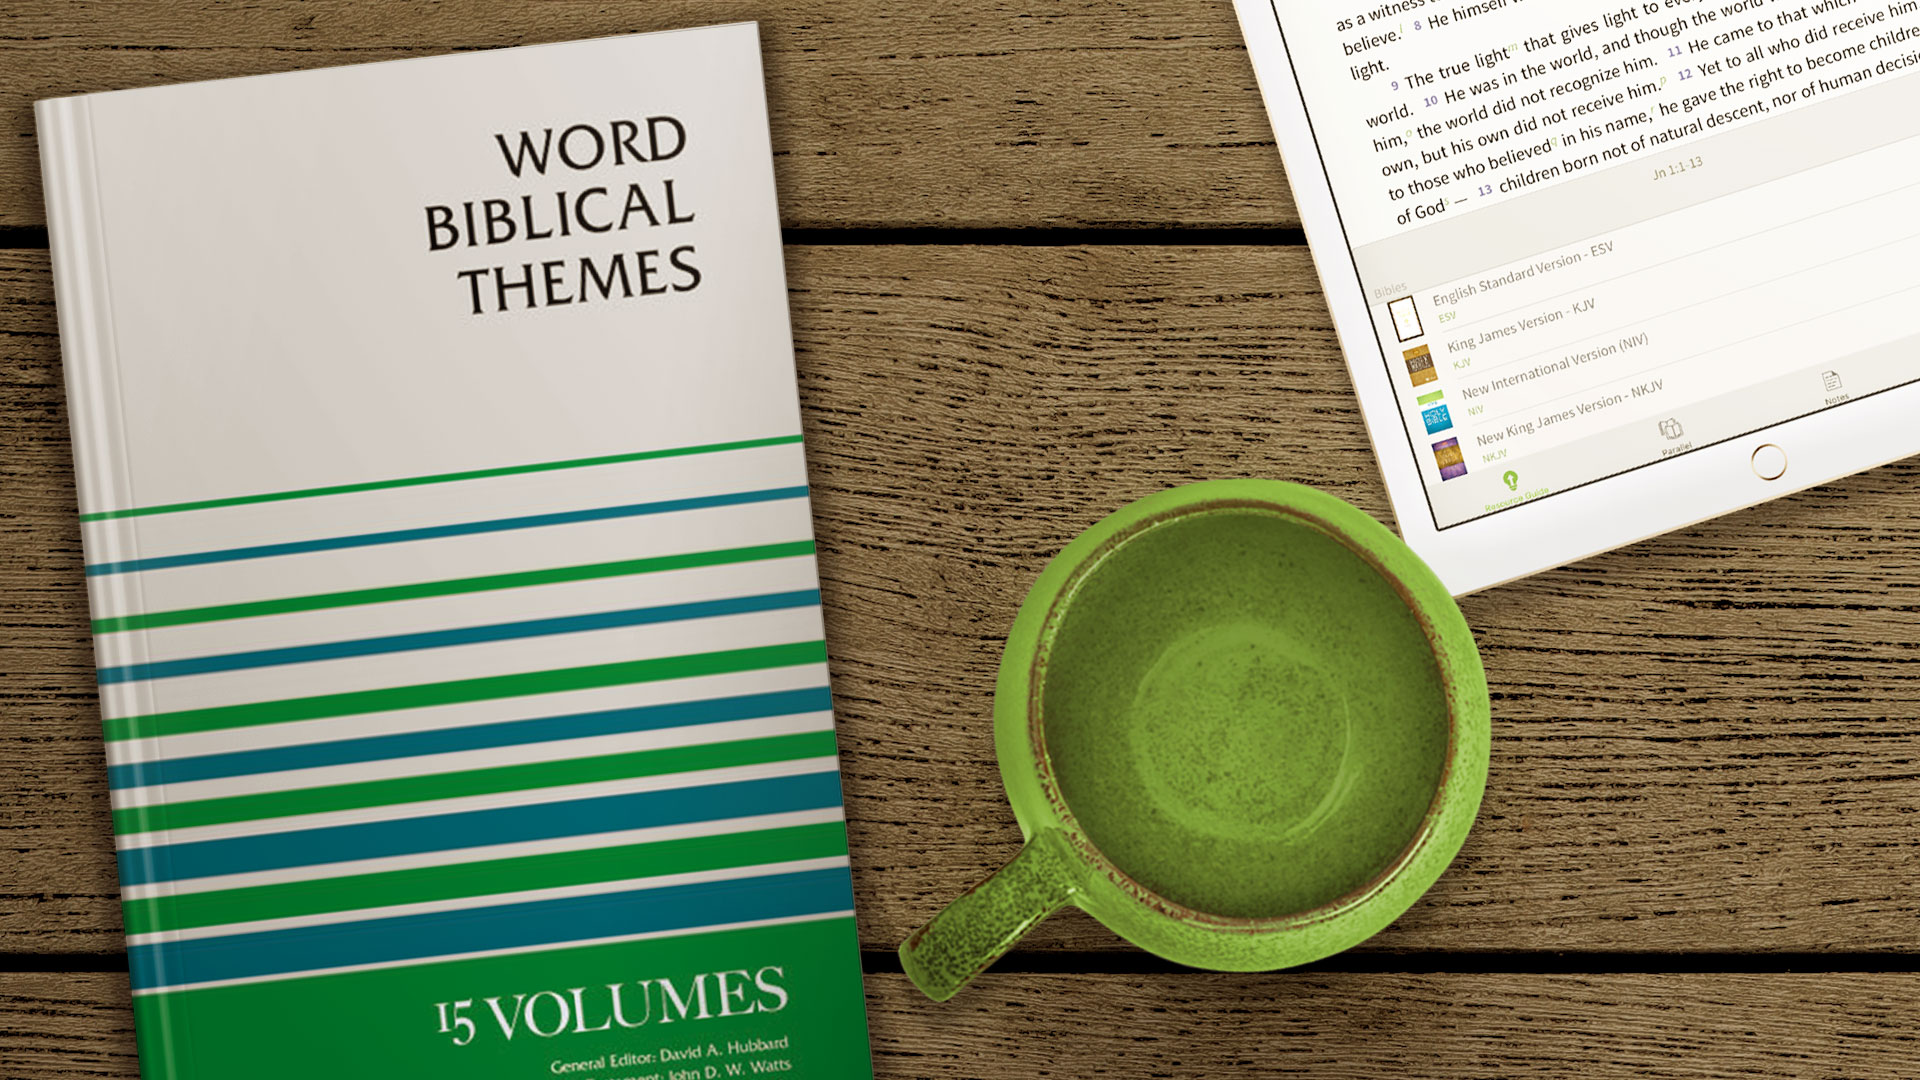 Word Biblical Themes for the Olive Tree Bible App